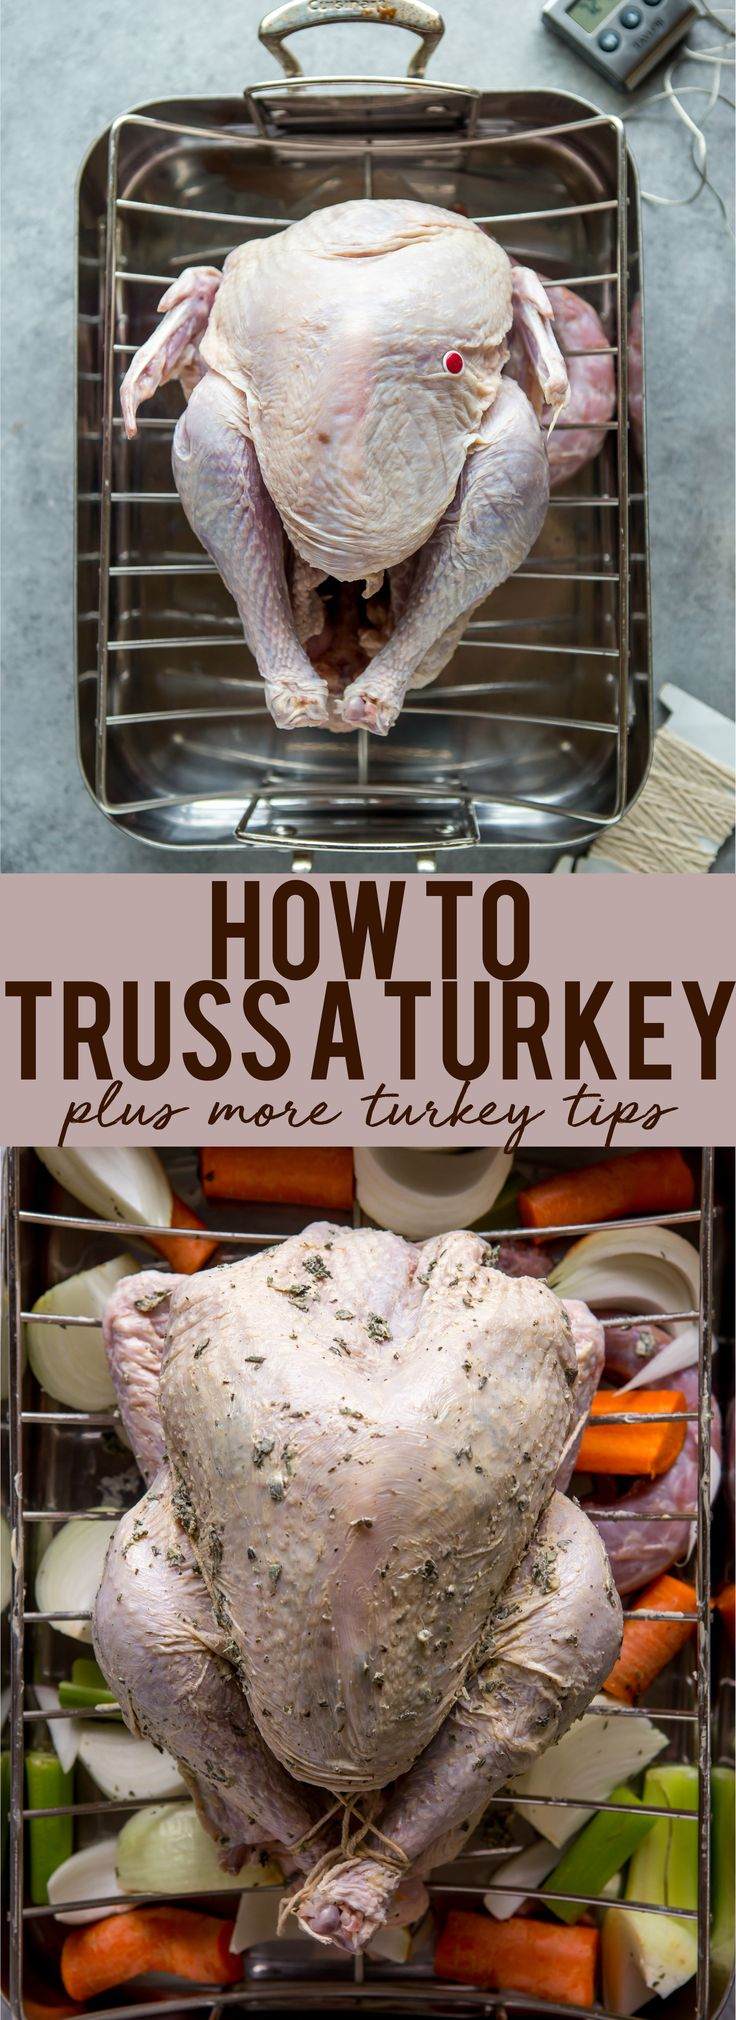 How to truss a turkey | How to prepare a turkey | How to tie a Turkey | Turkey Tips | Tips for first time hosting thanksgiving | How to make a turkey